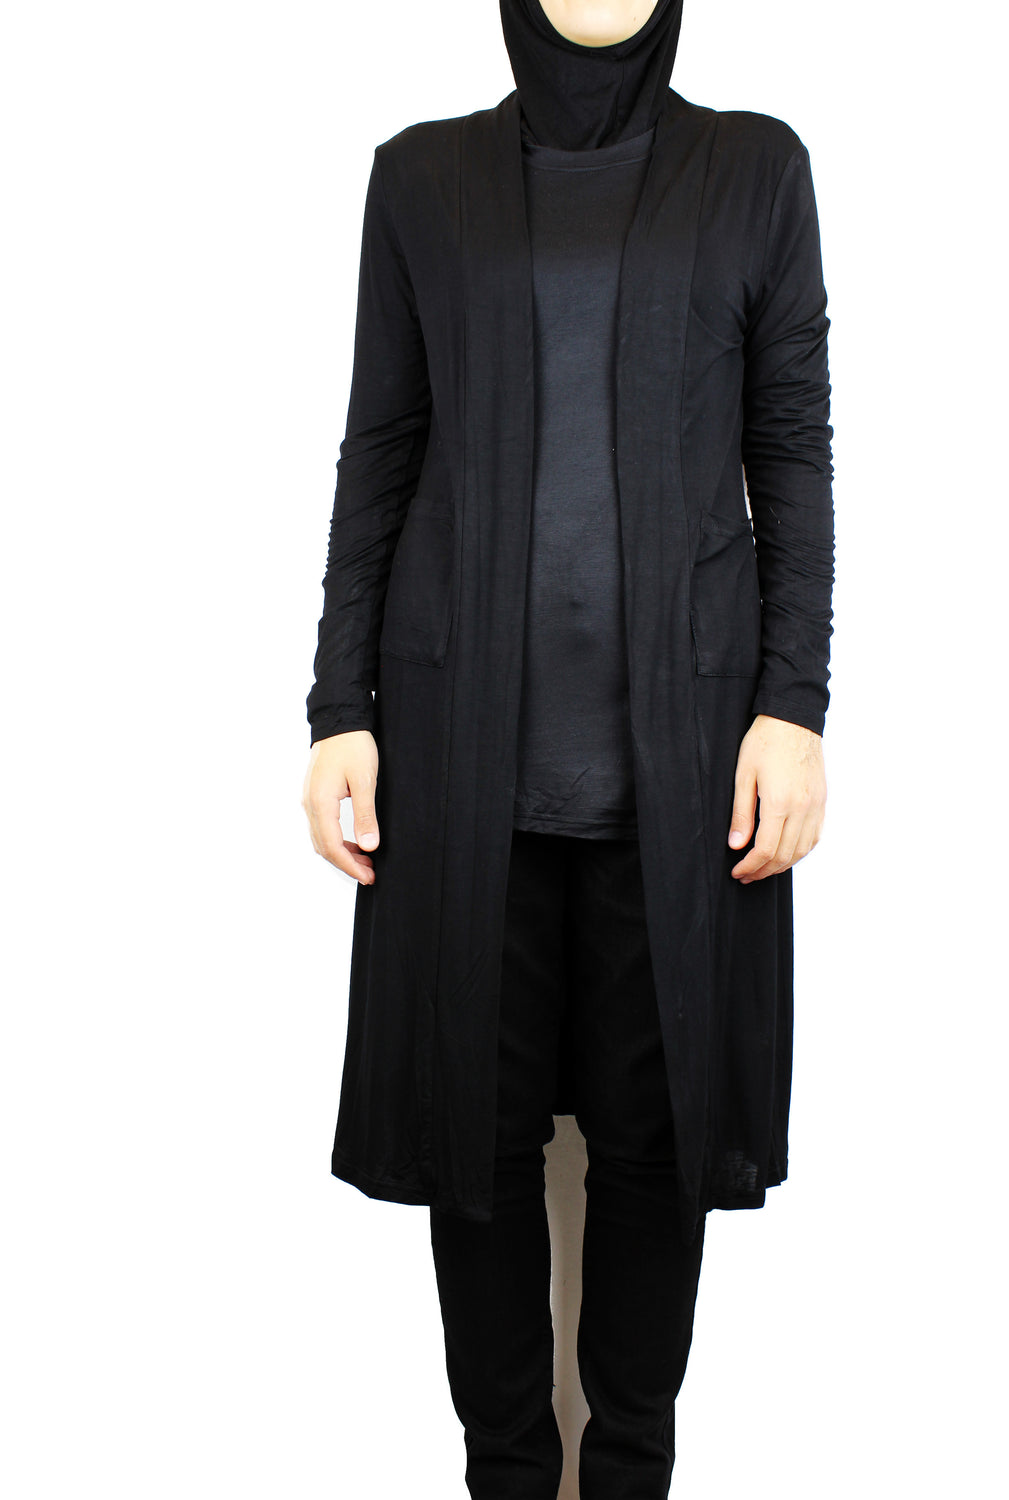 black maxi cardigan with long sleeves and pockets